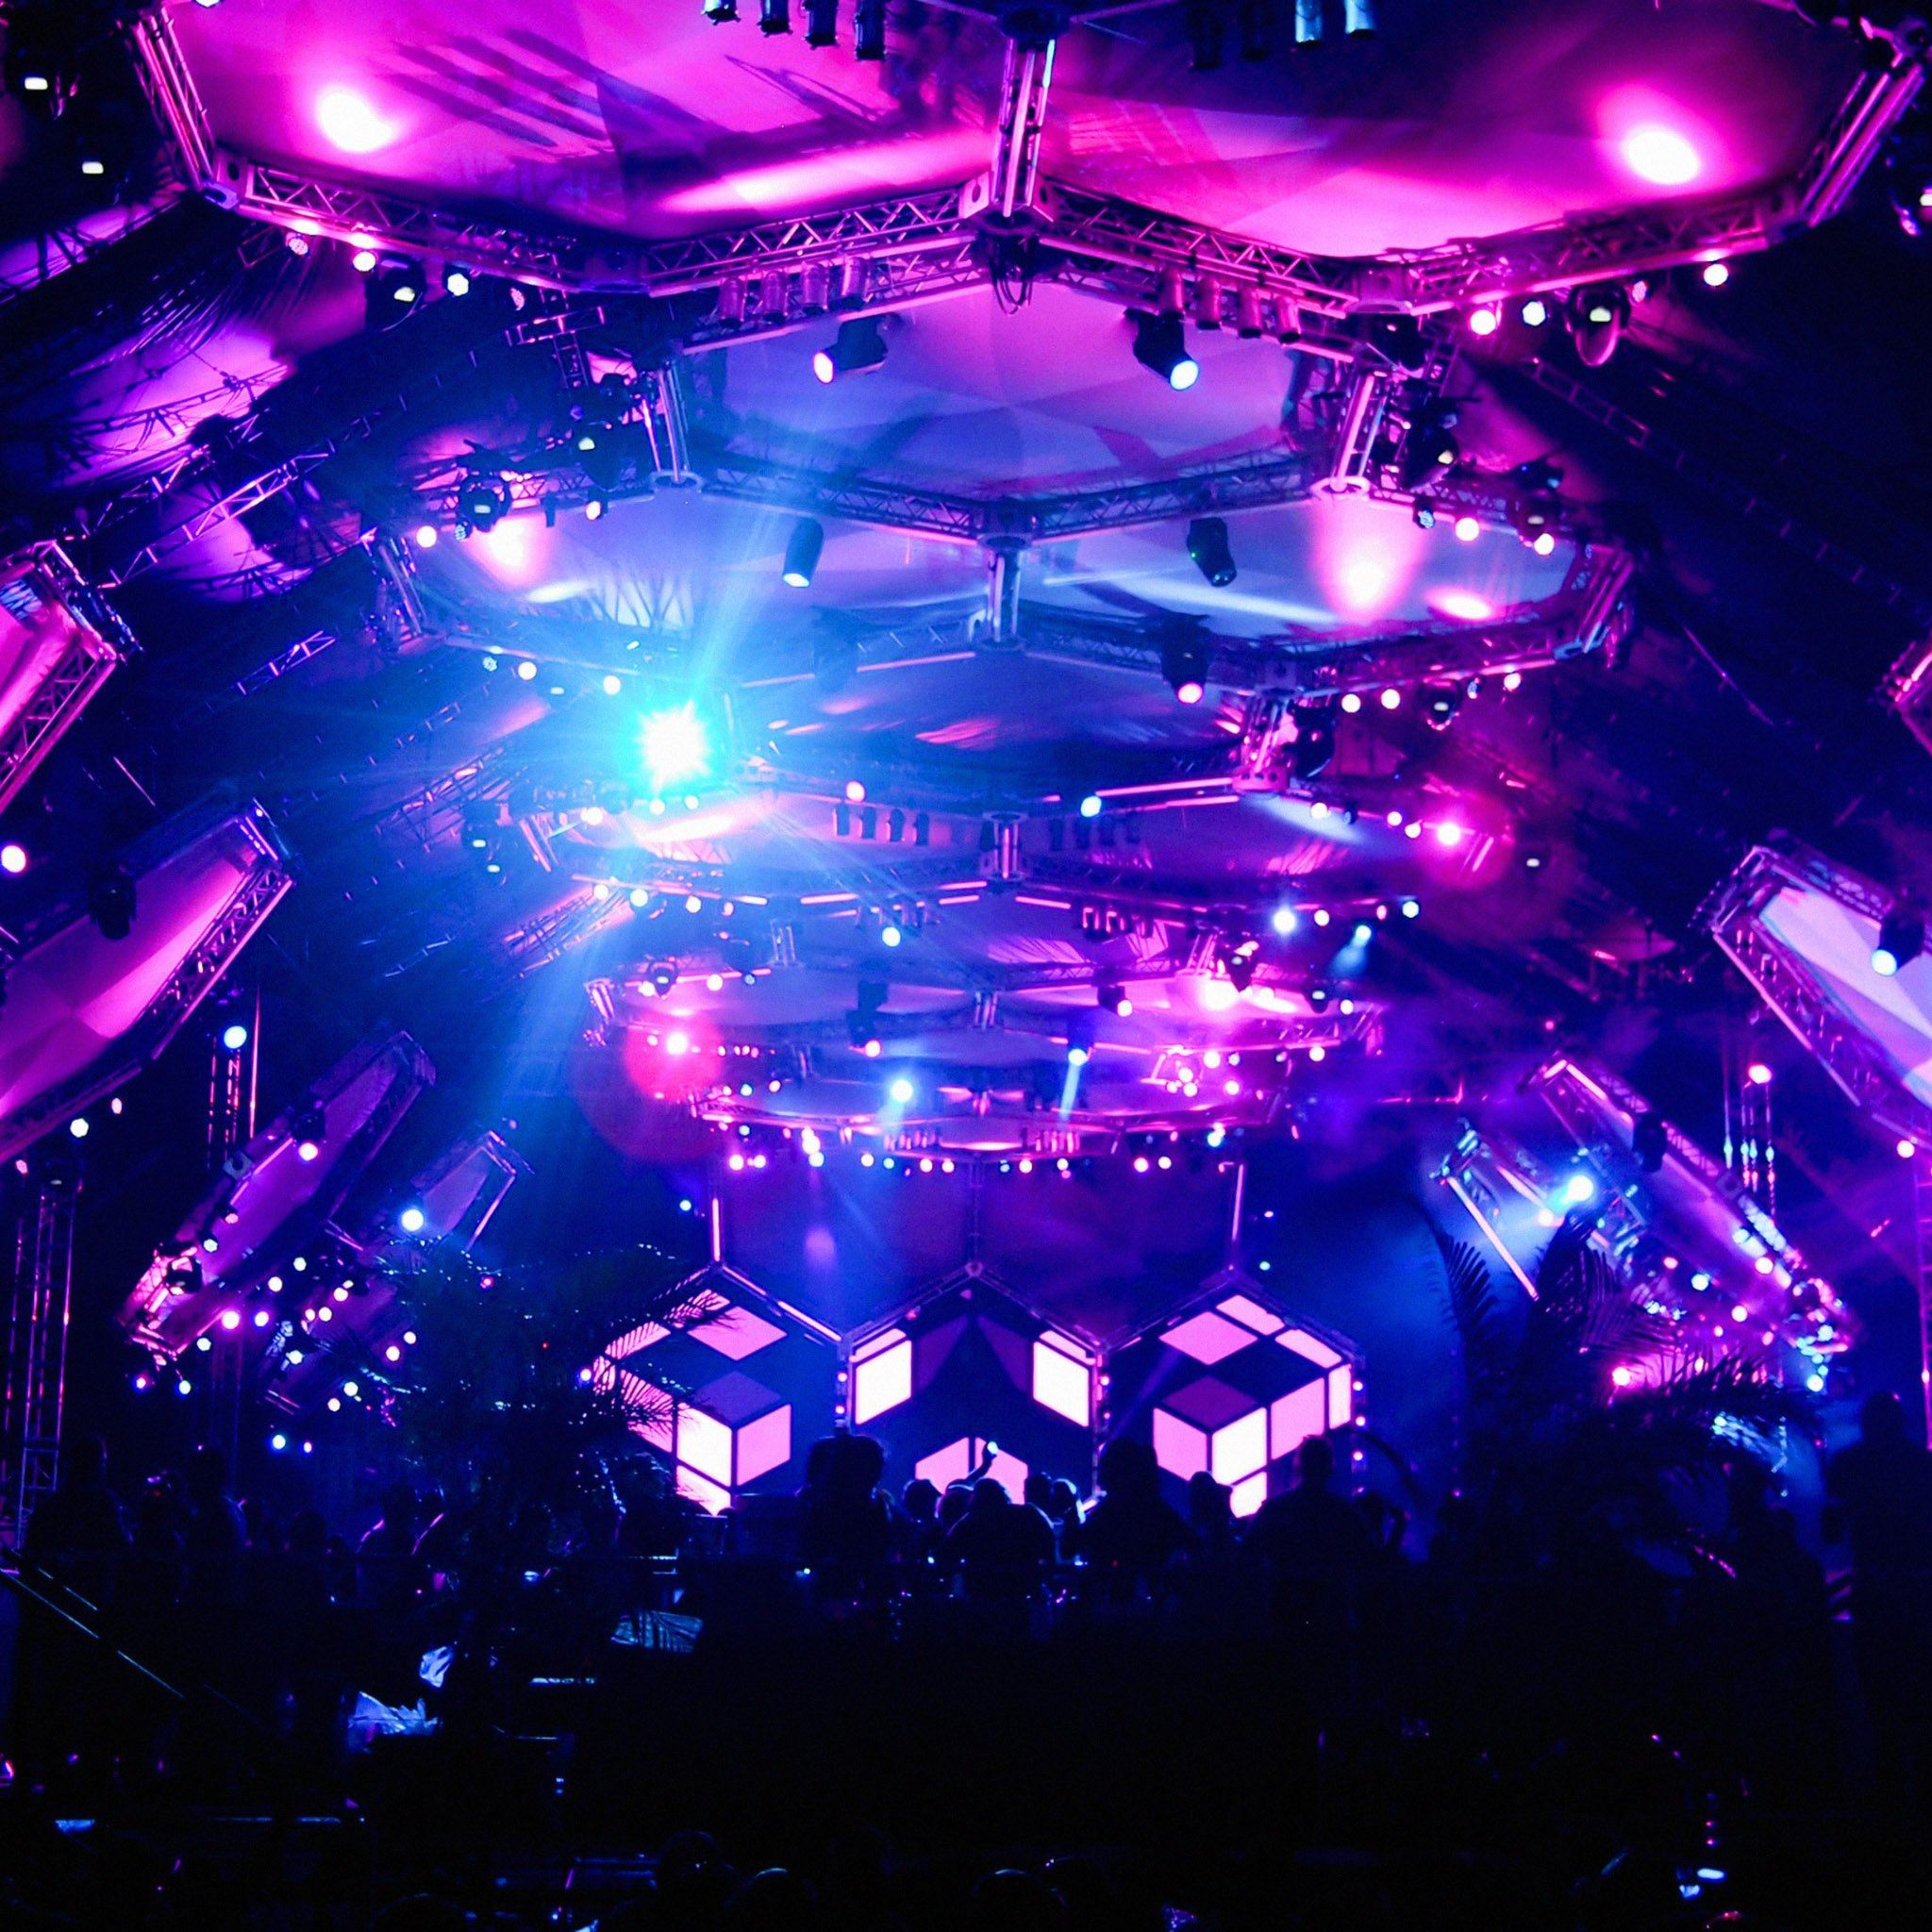 Ultra Music Fest Lively Crowd Concept iPad Air wallpaper